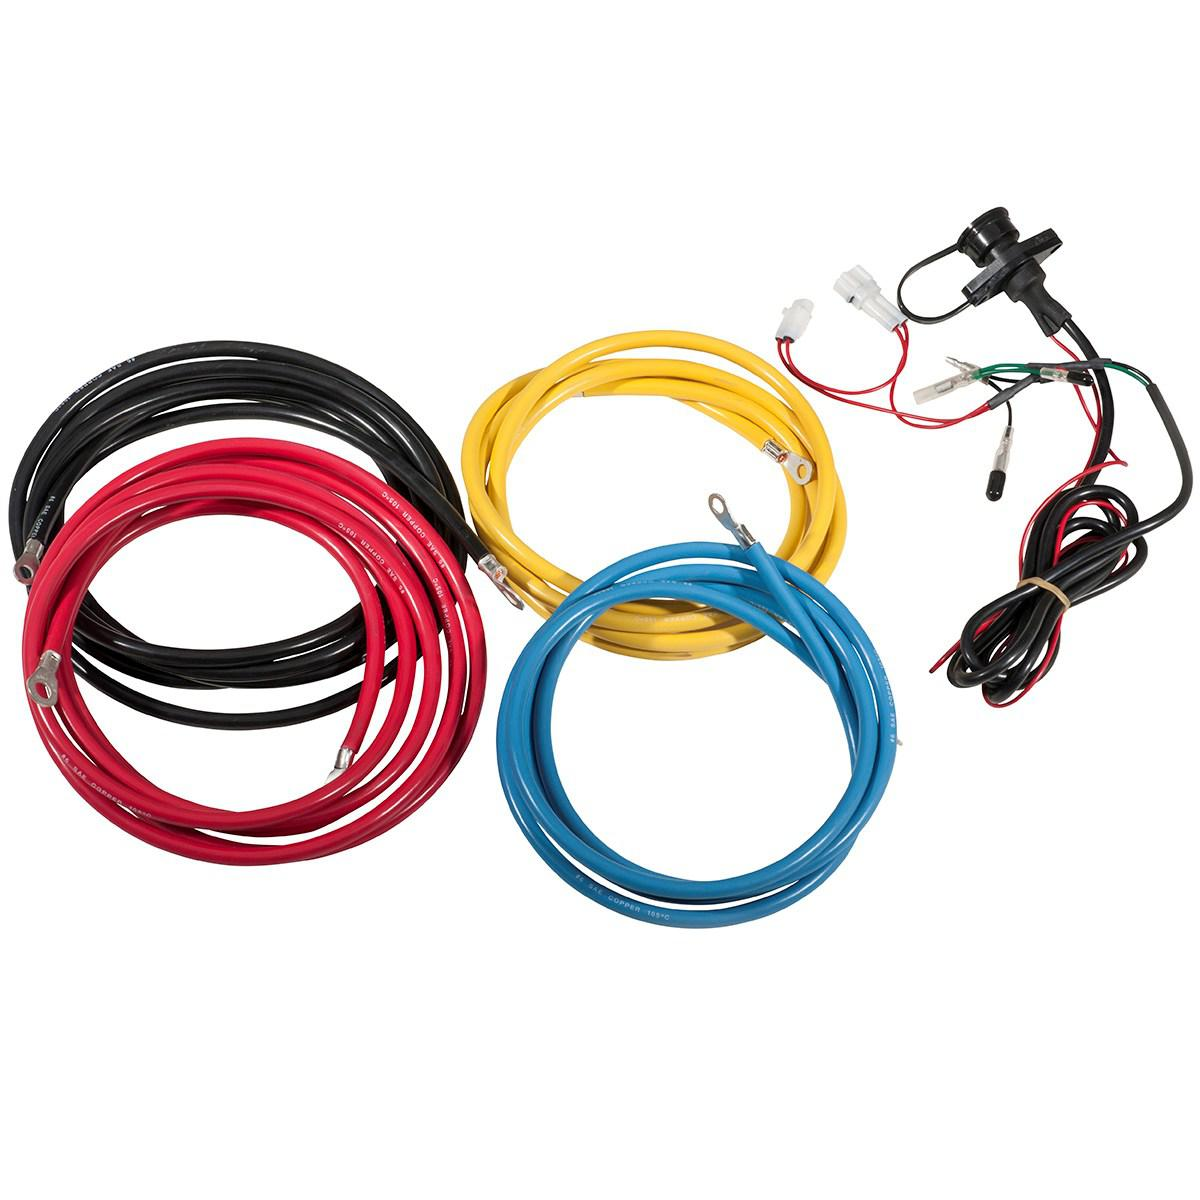 warn winch wiring kit solidfonts winch battery cables wiring kits parts